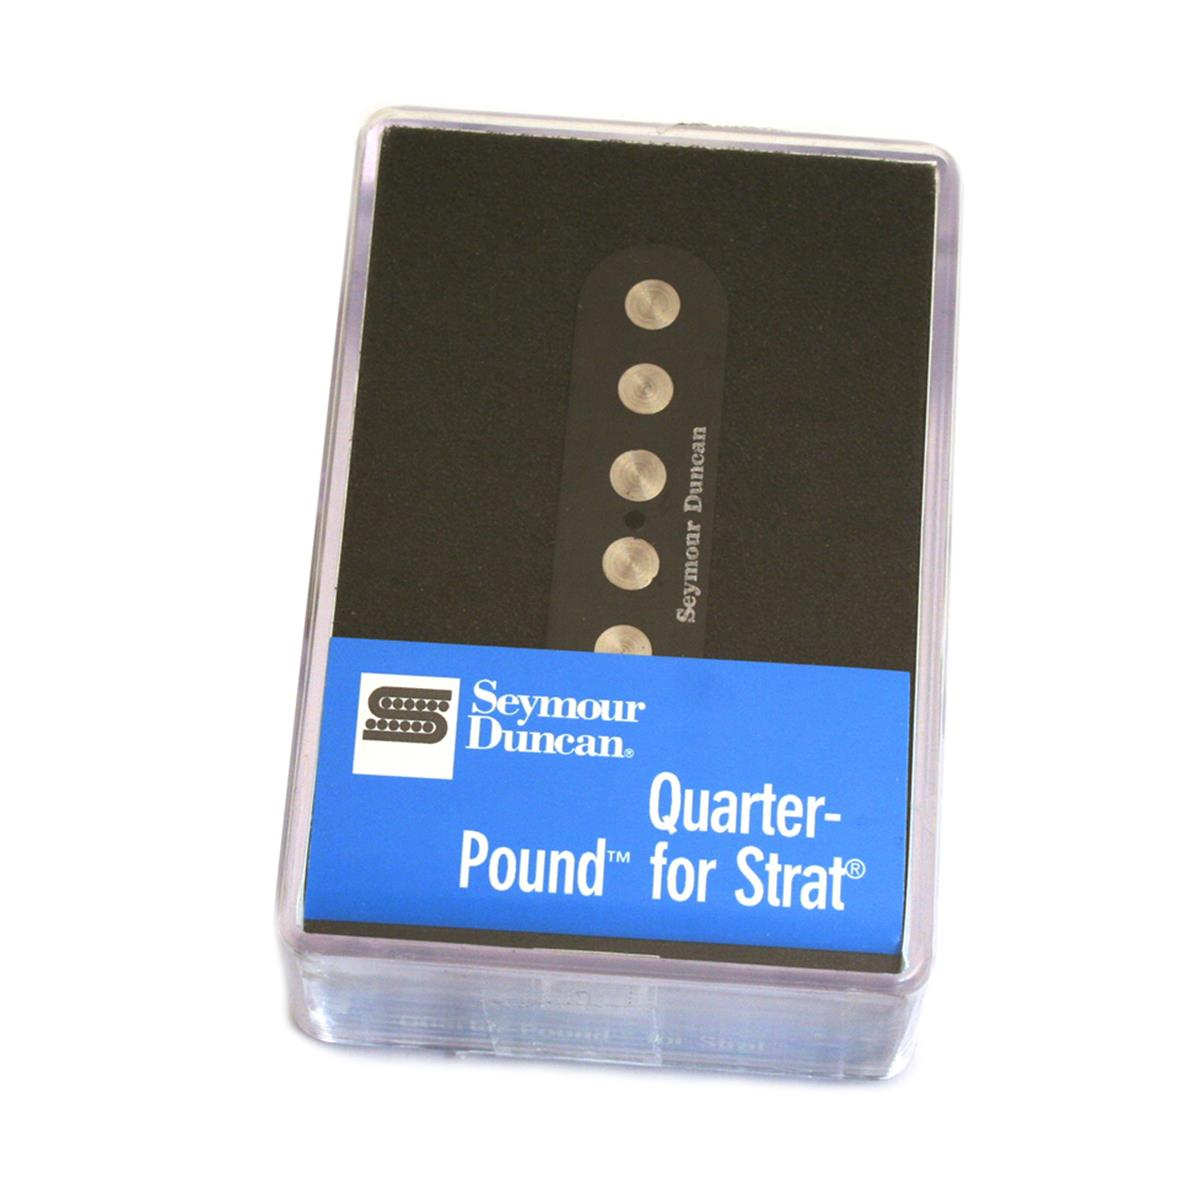 SEYMOUR-DUNCAN SSL-4 QUARTER POUND for Strat BLACK - 2717028 11202-03